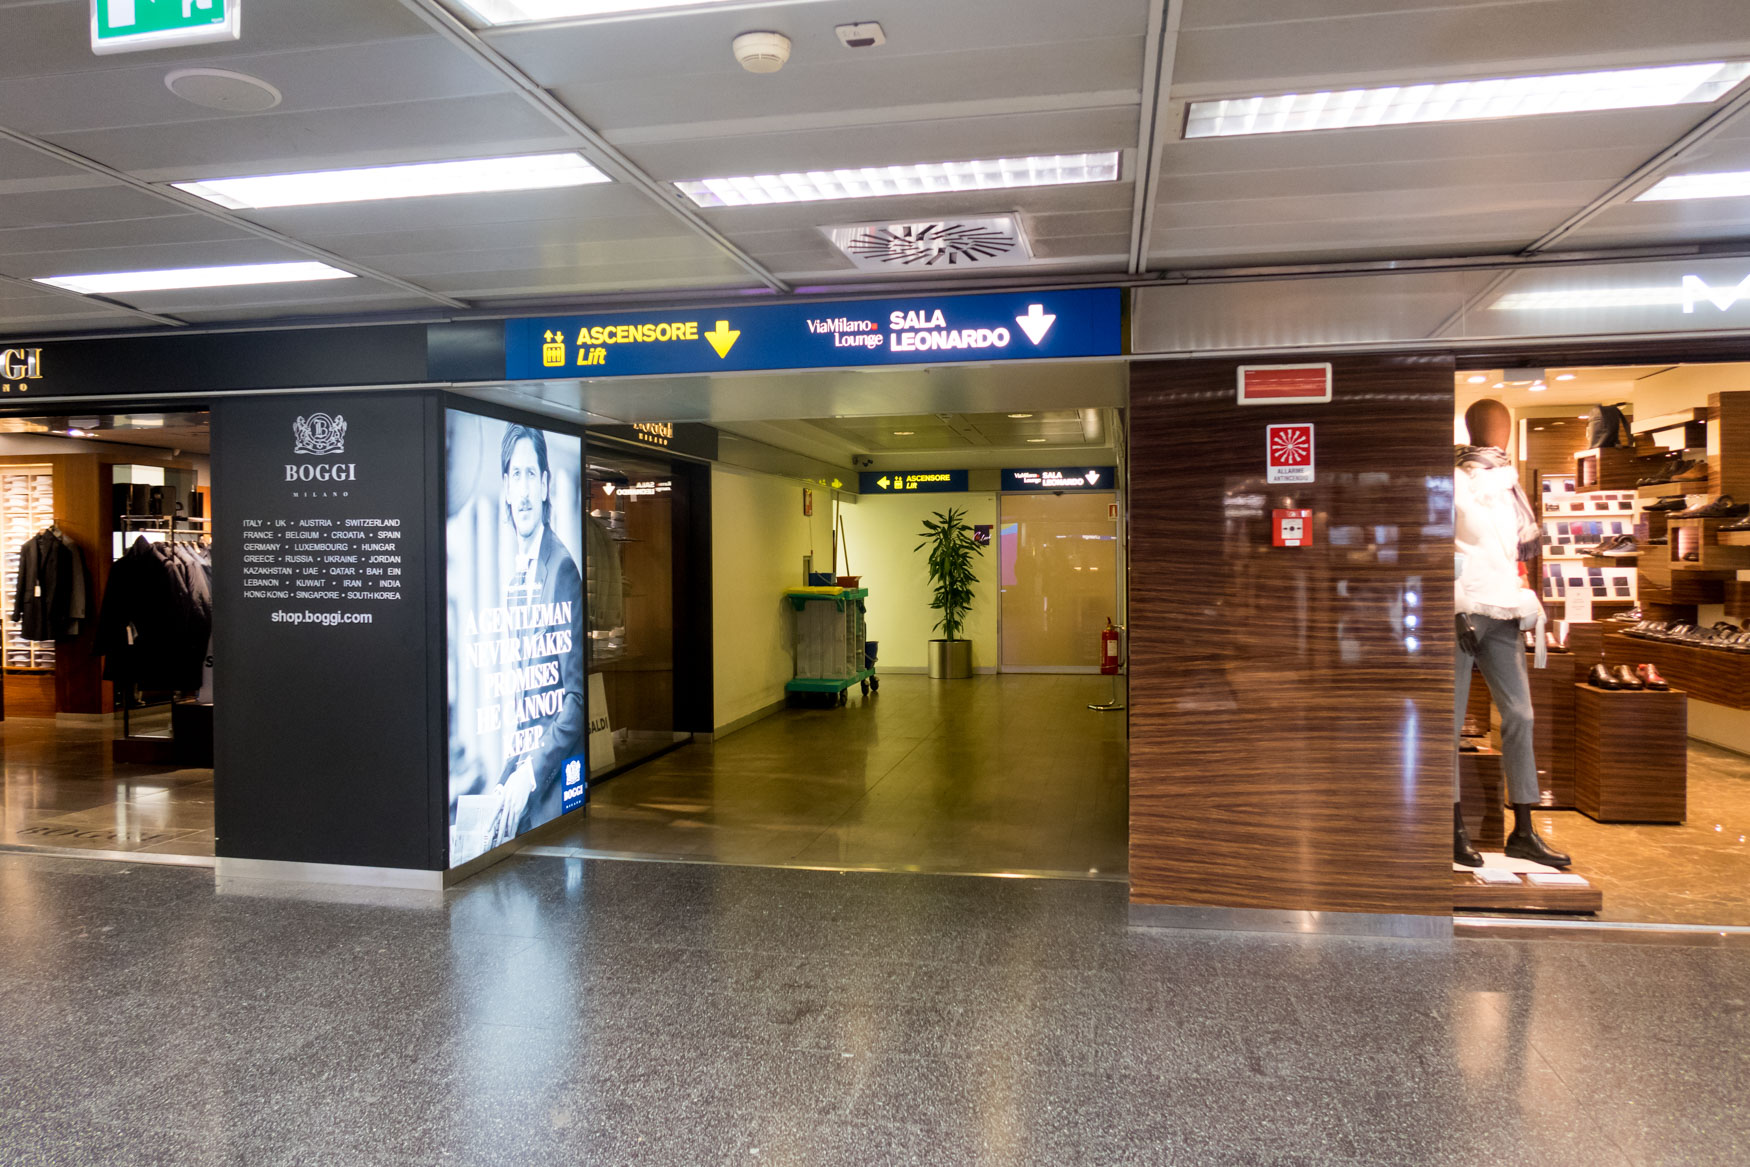 Club S.E.A. Sala Leonardo Milan Linate Entrance